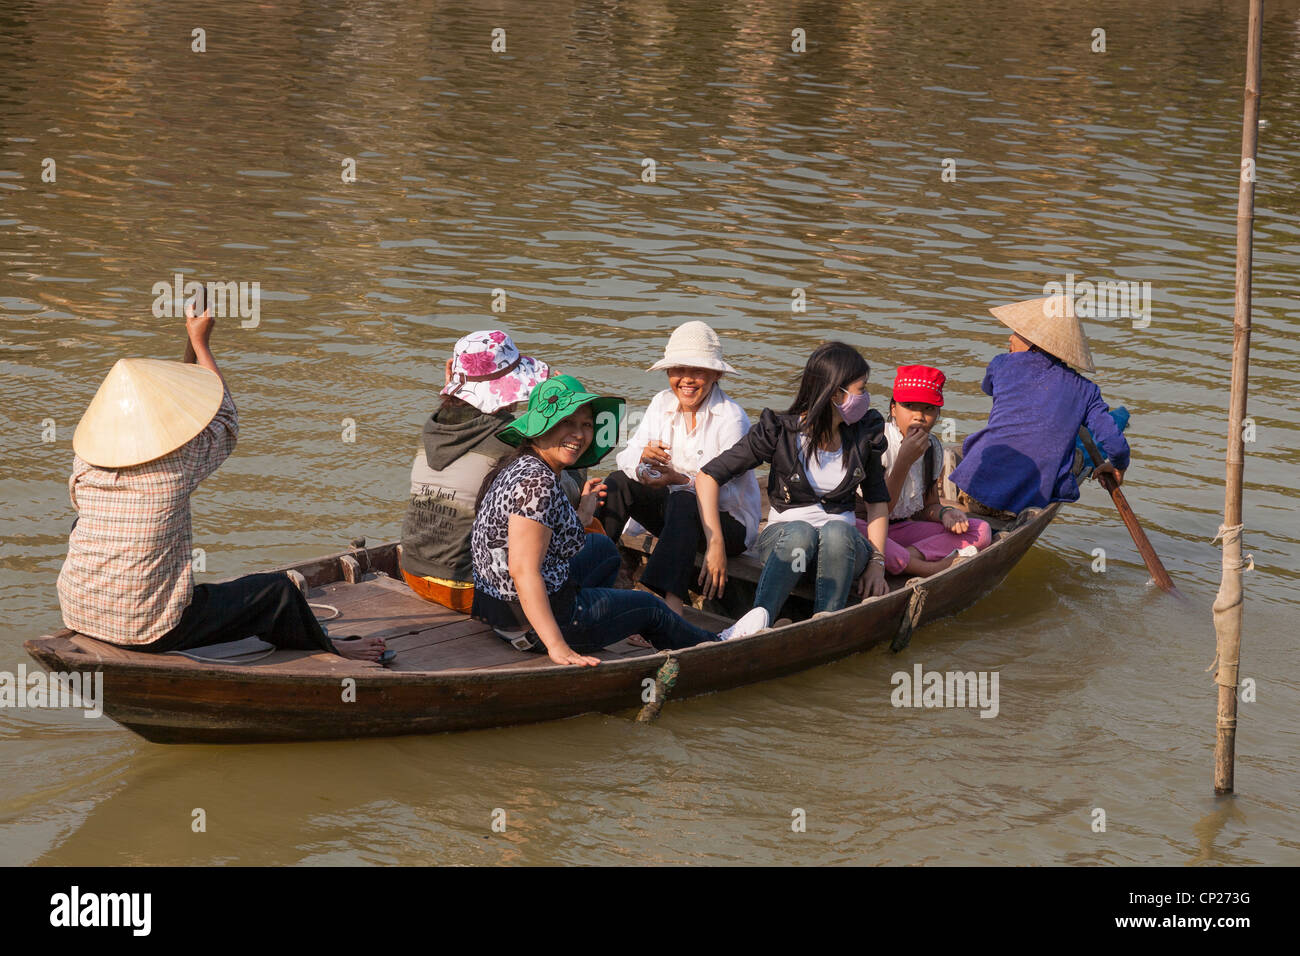 Women travelling in a small wooden boat, Hoi An, Quang Nam province, Vietnam - Stock Image